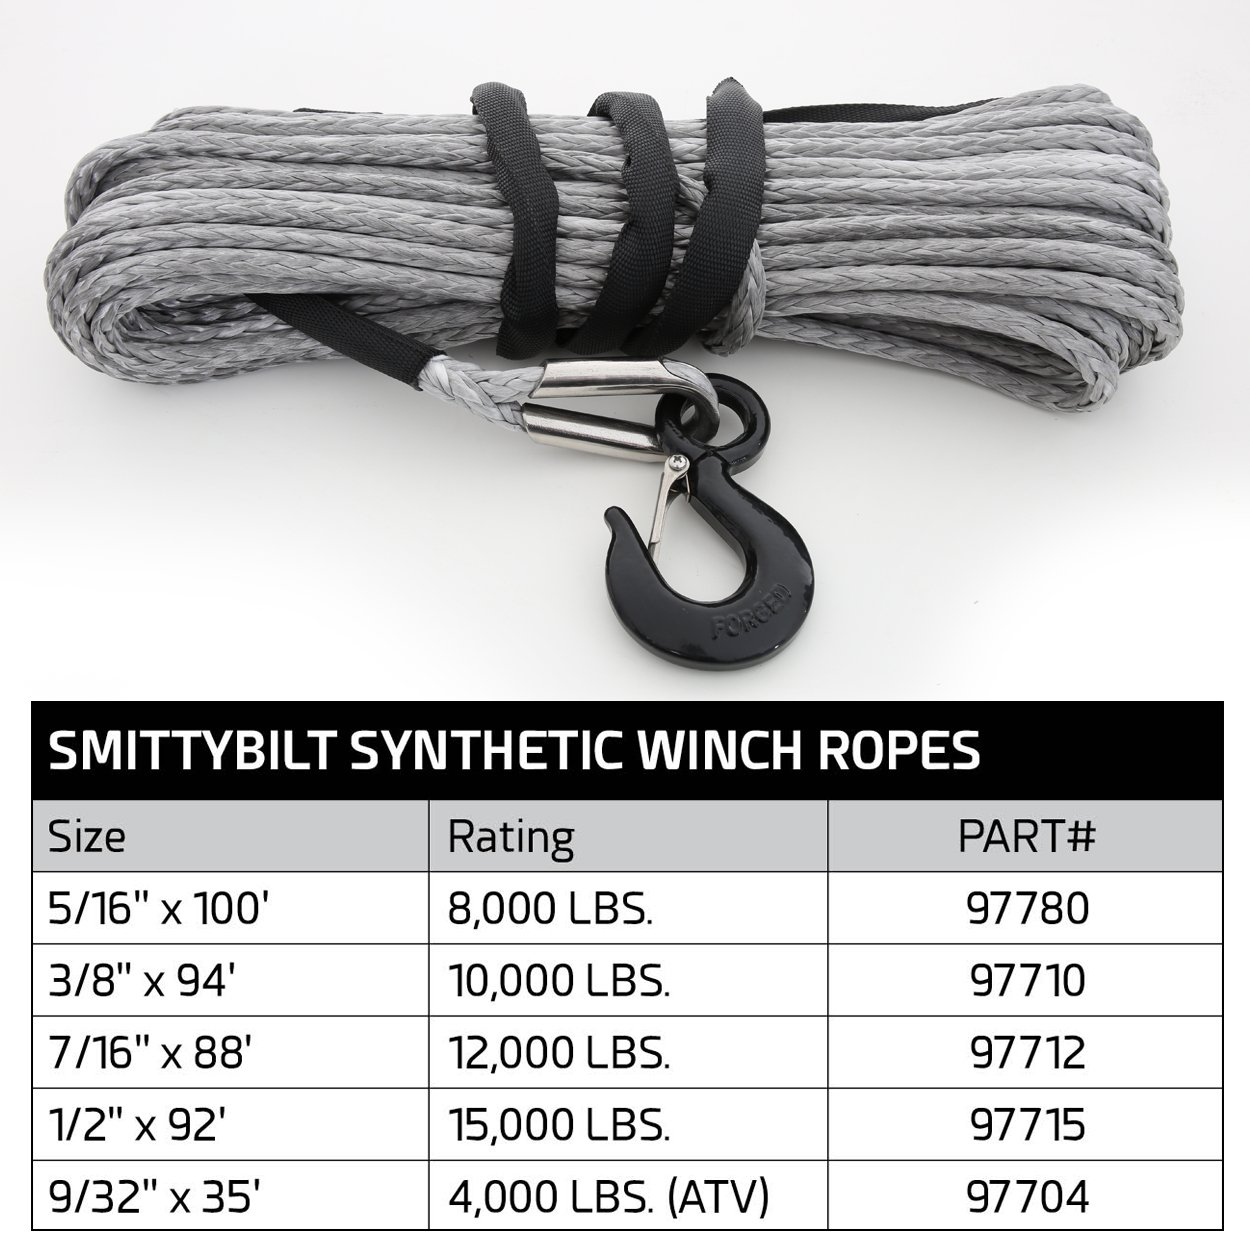 10,000 lbs. 3//8 x 94 Smittybilt 97710 XRC Universal Synthetic Winch Rope